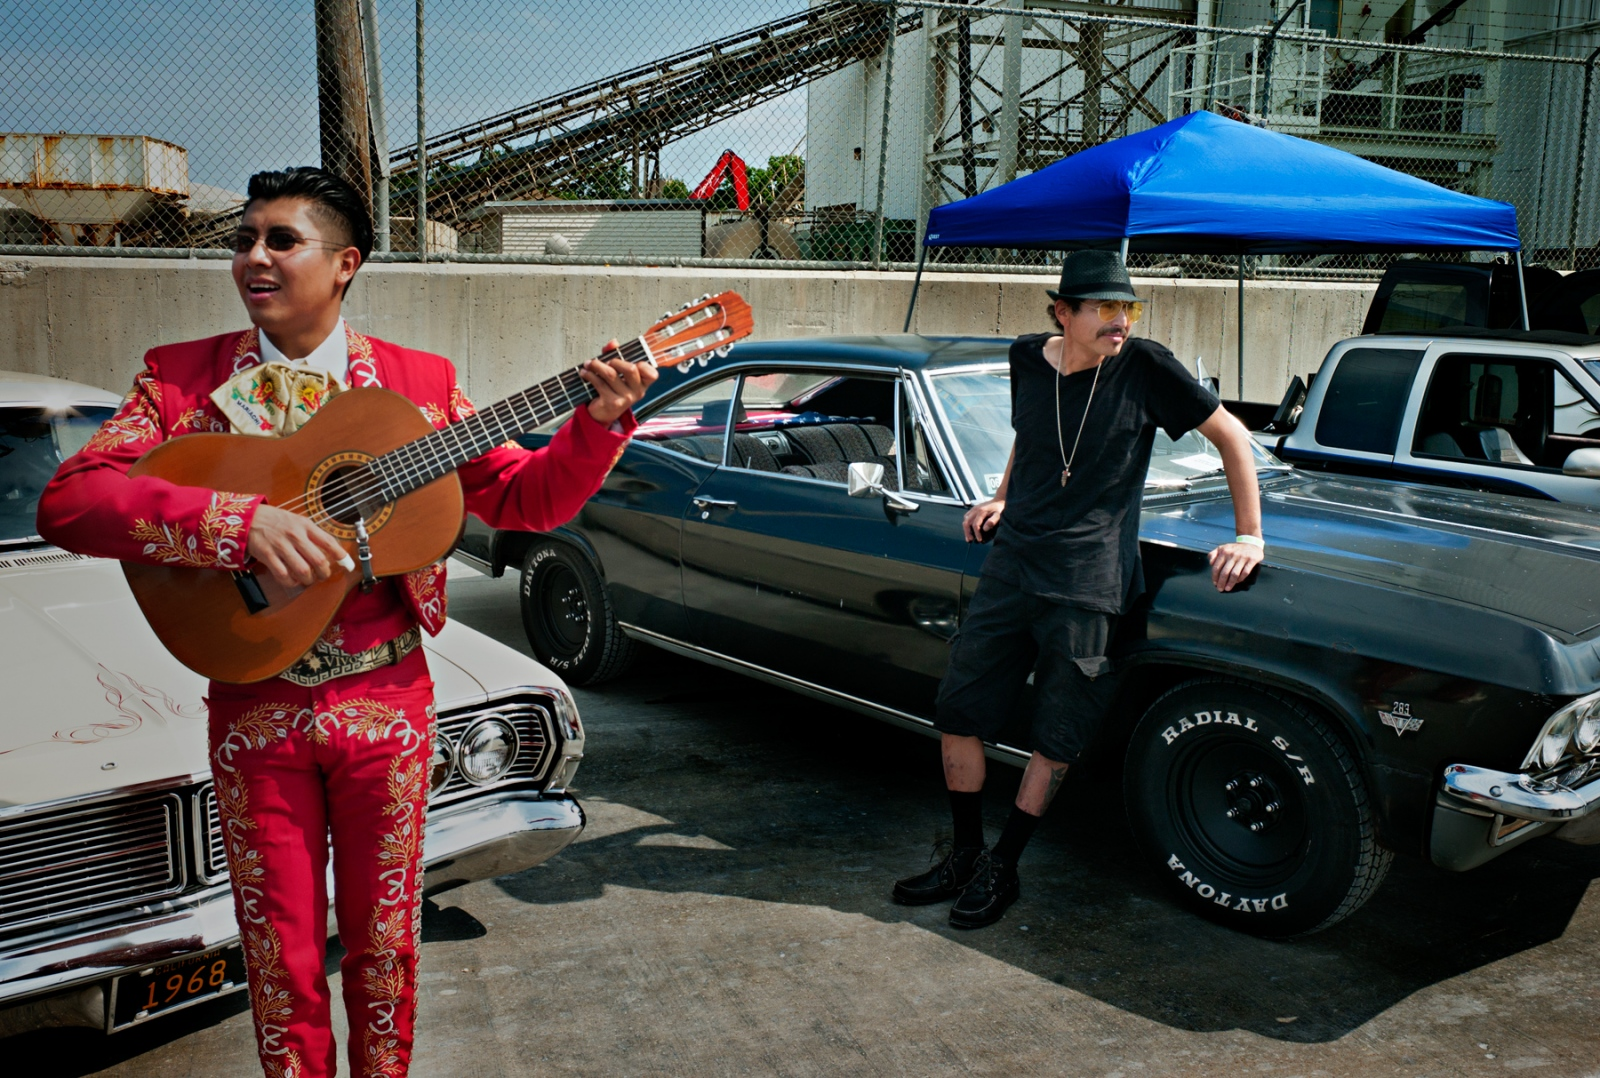 Art and Documentary Photography - Loading LowRider2013-61.jpg